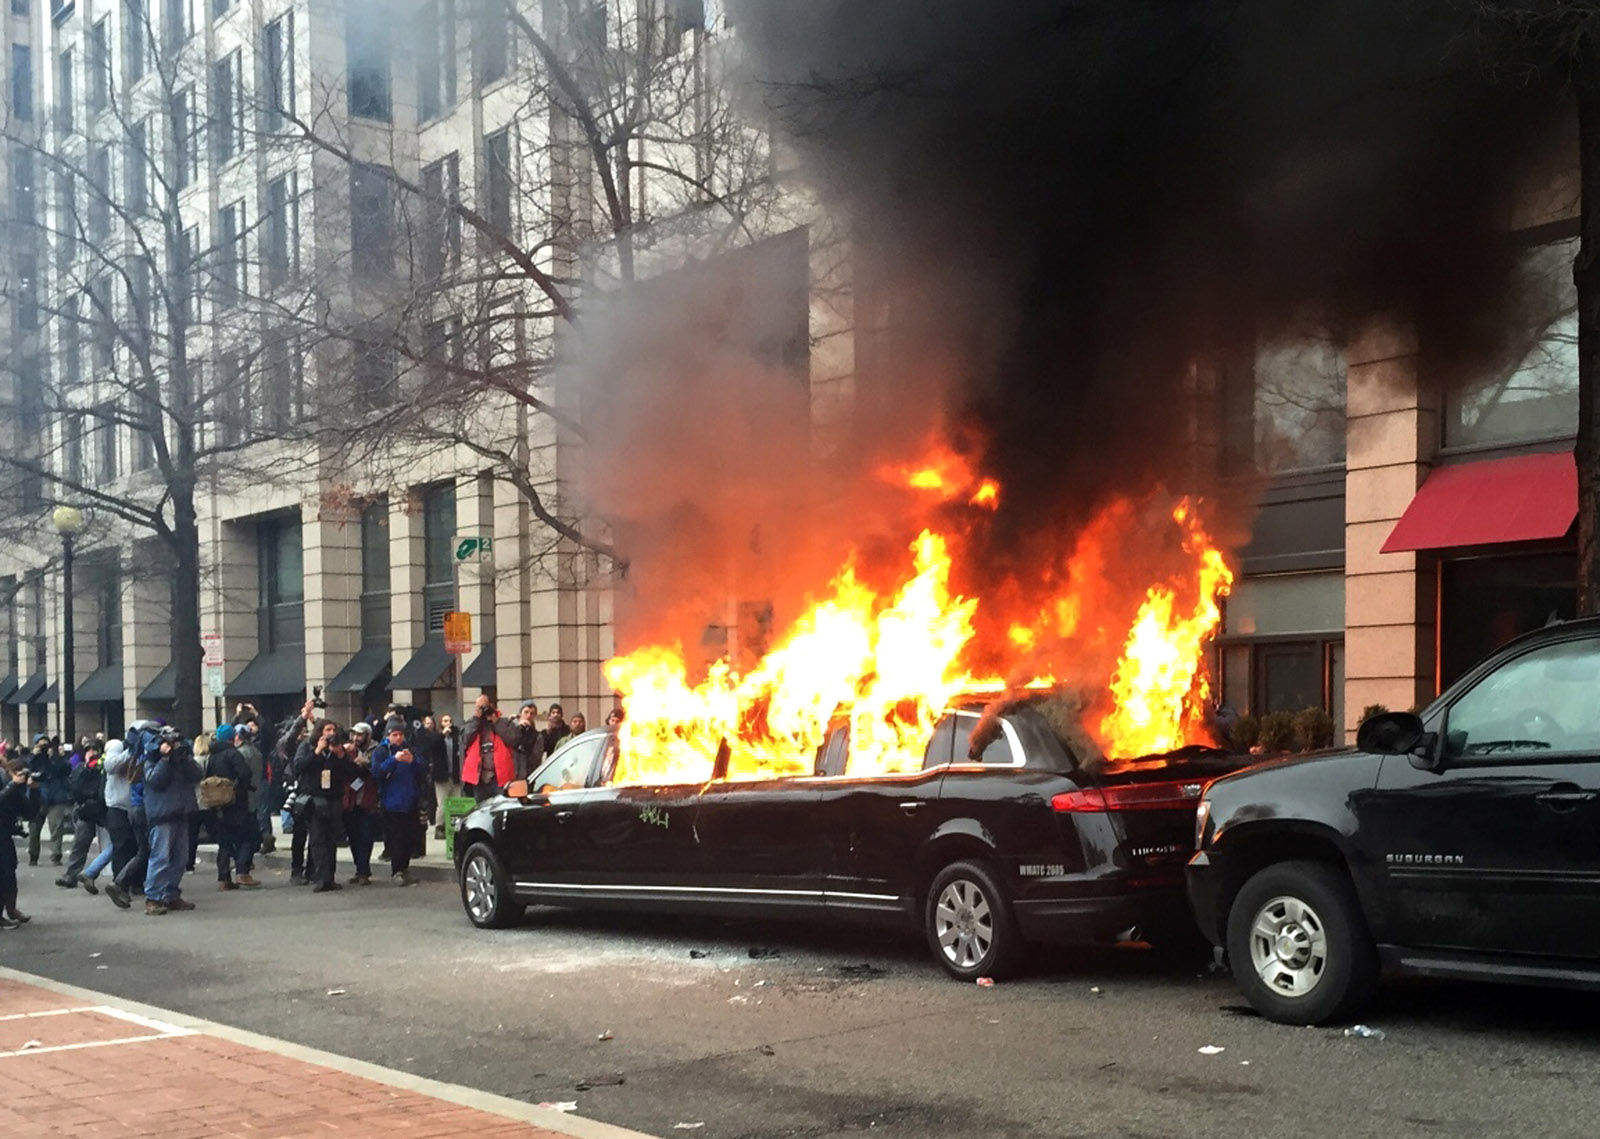 Witnesses describe destruction during Inauguration Day riots | WTOP